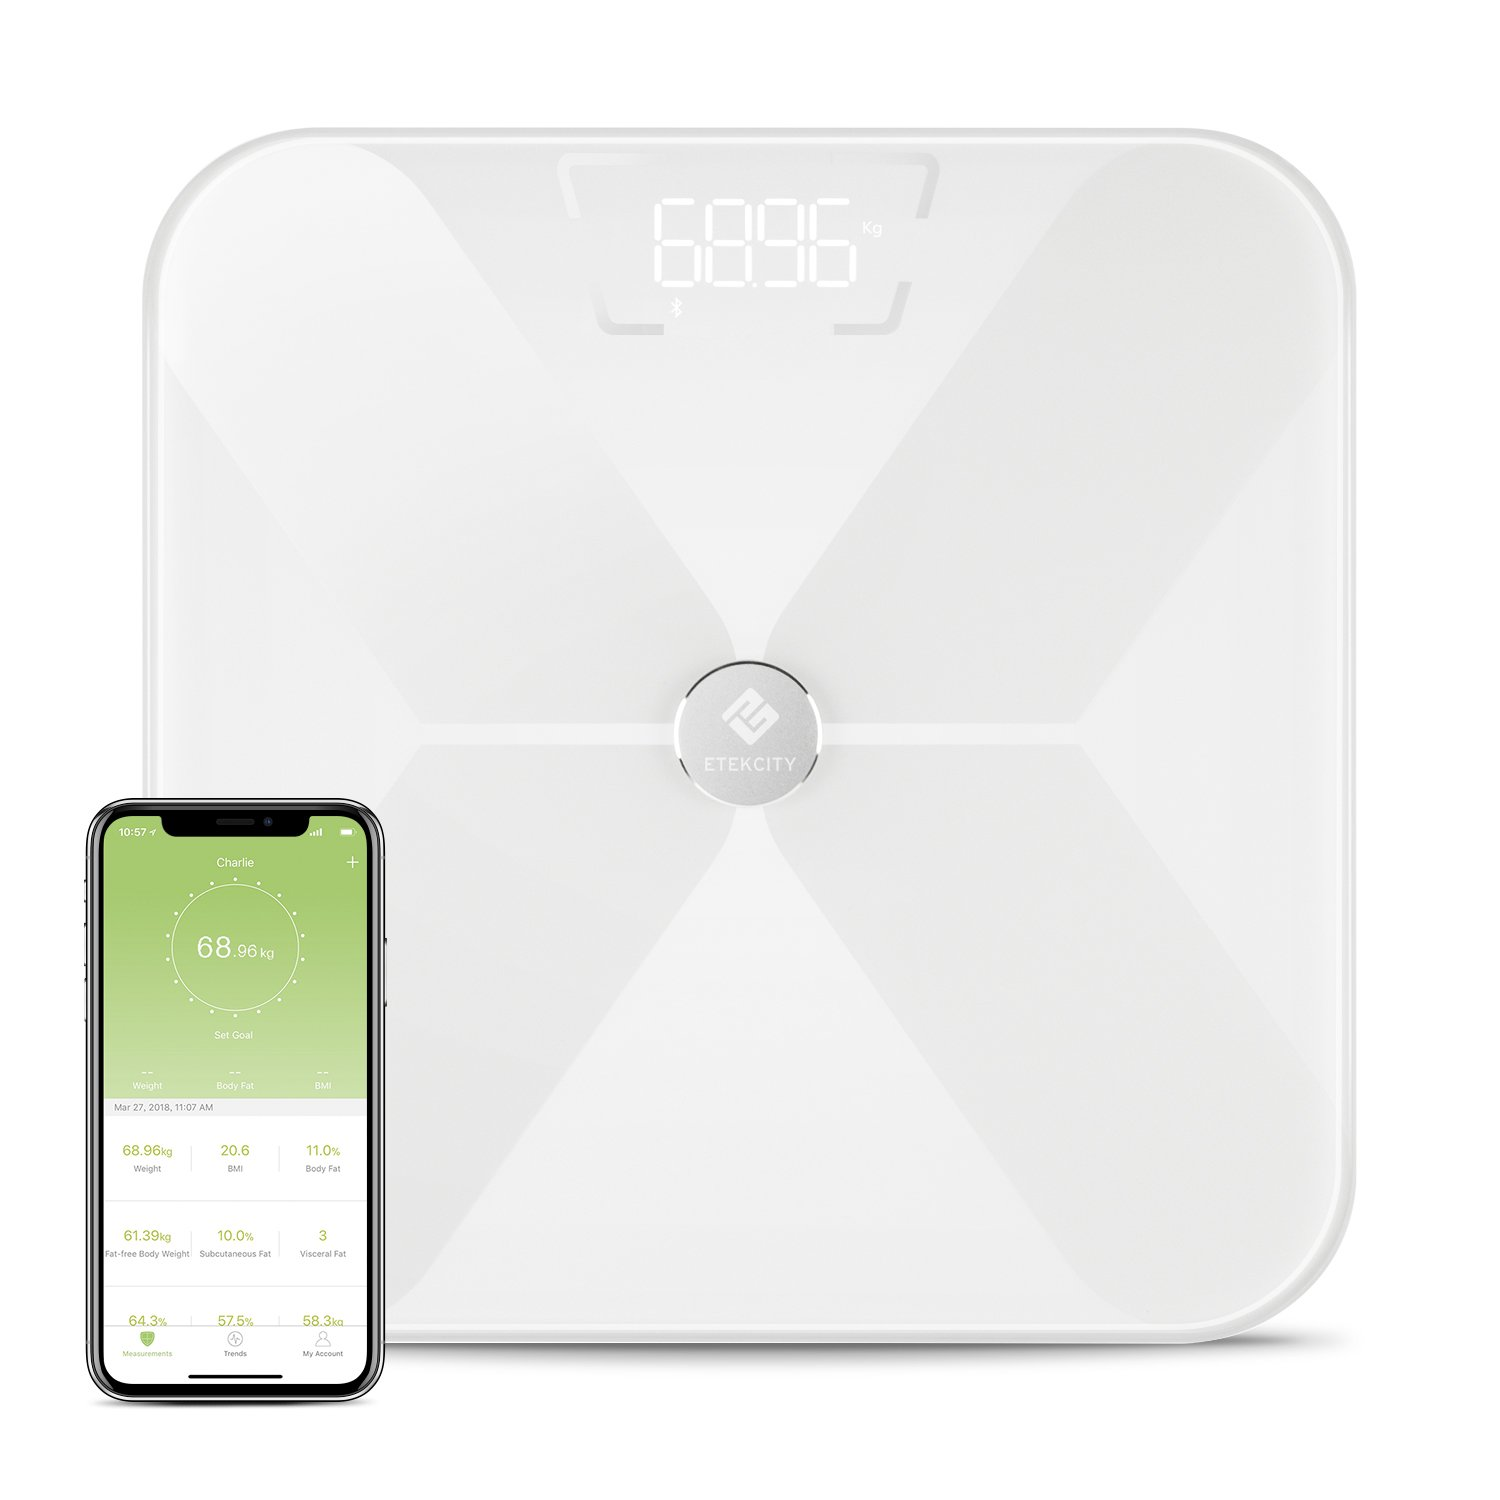 Etekcity Bluetooth Digital Body Fat Scales, Wireless Smart Weighing Weight Bathroom Scale, 180kg/ 400 lb / 28st, Up to 13 Body Composition Analysis Include Body Weight, Body Fat, Water, Muscle Mass, BMI, BMR, Bone Mass, Visceral Fat, etc. White 8179150211